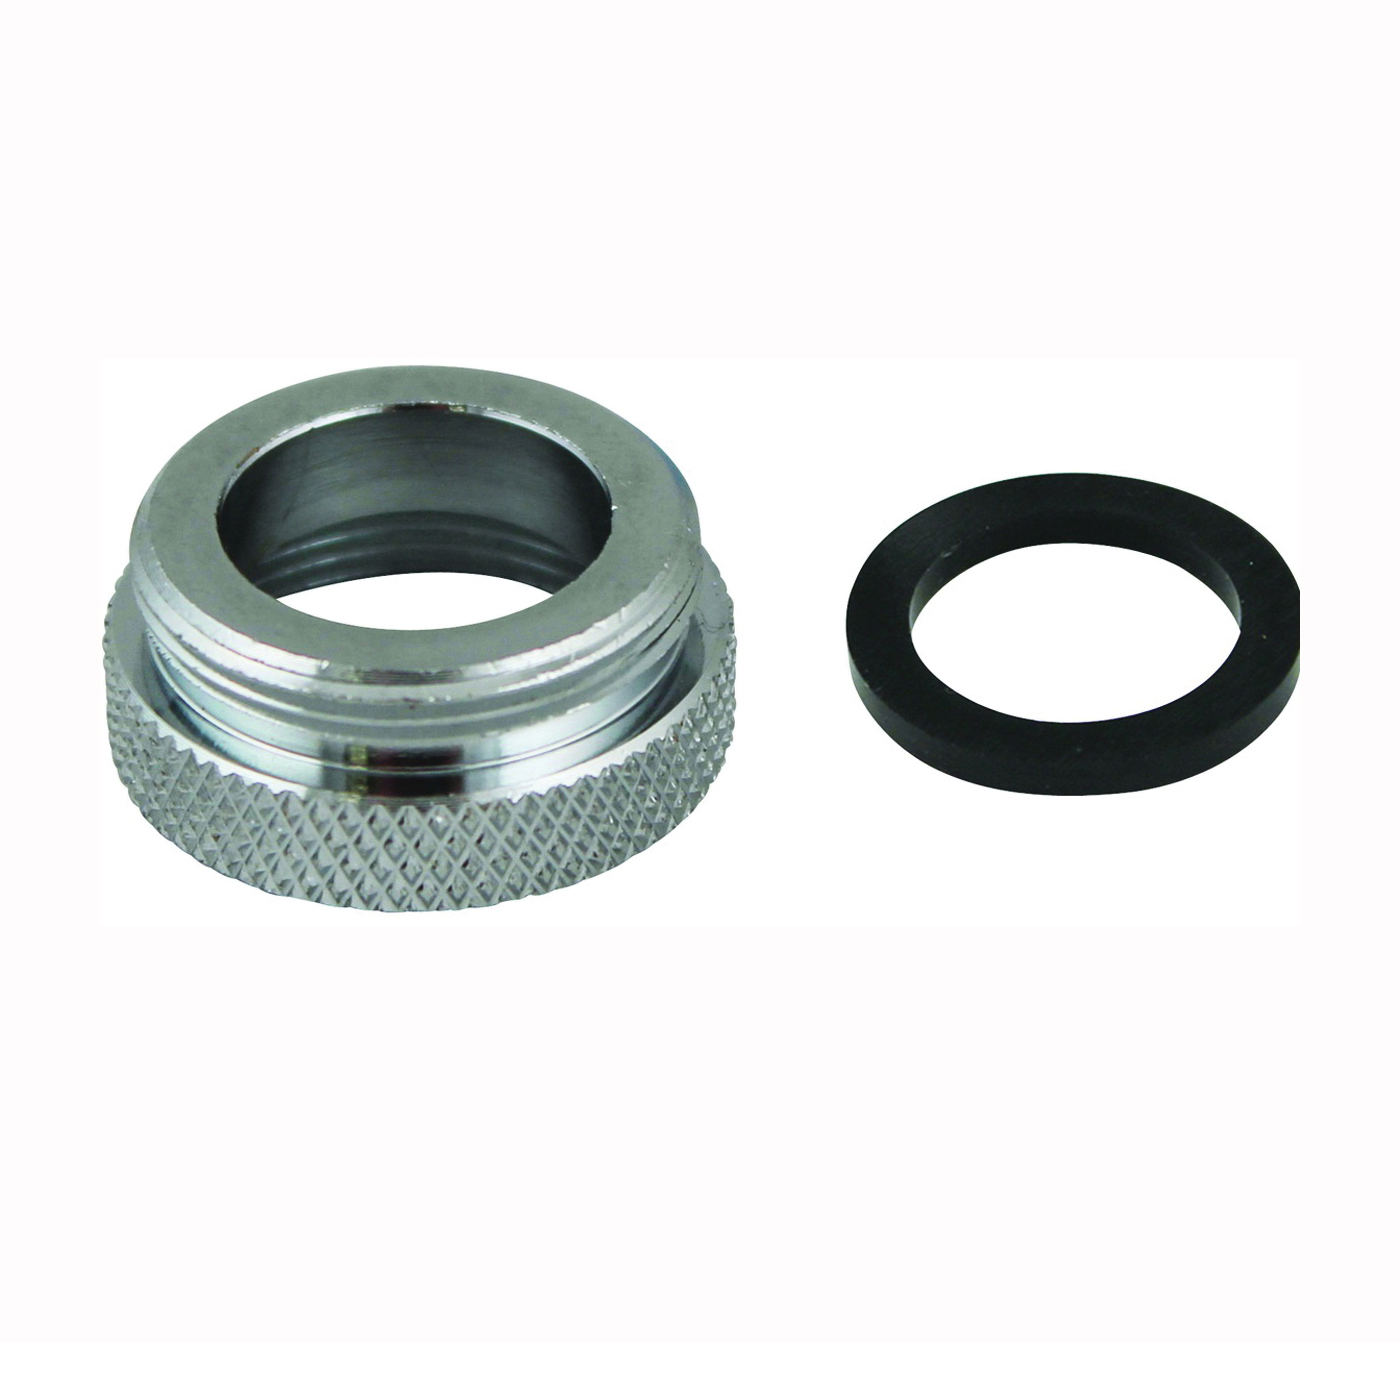 Picture of Plumb Pak PP800-61LF Faucet Aerator Adapter, 3/4-27 x 55/64-27 in, Female x Male, Chrome